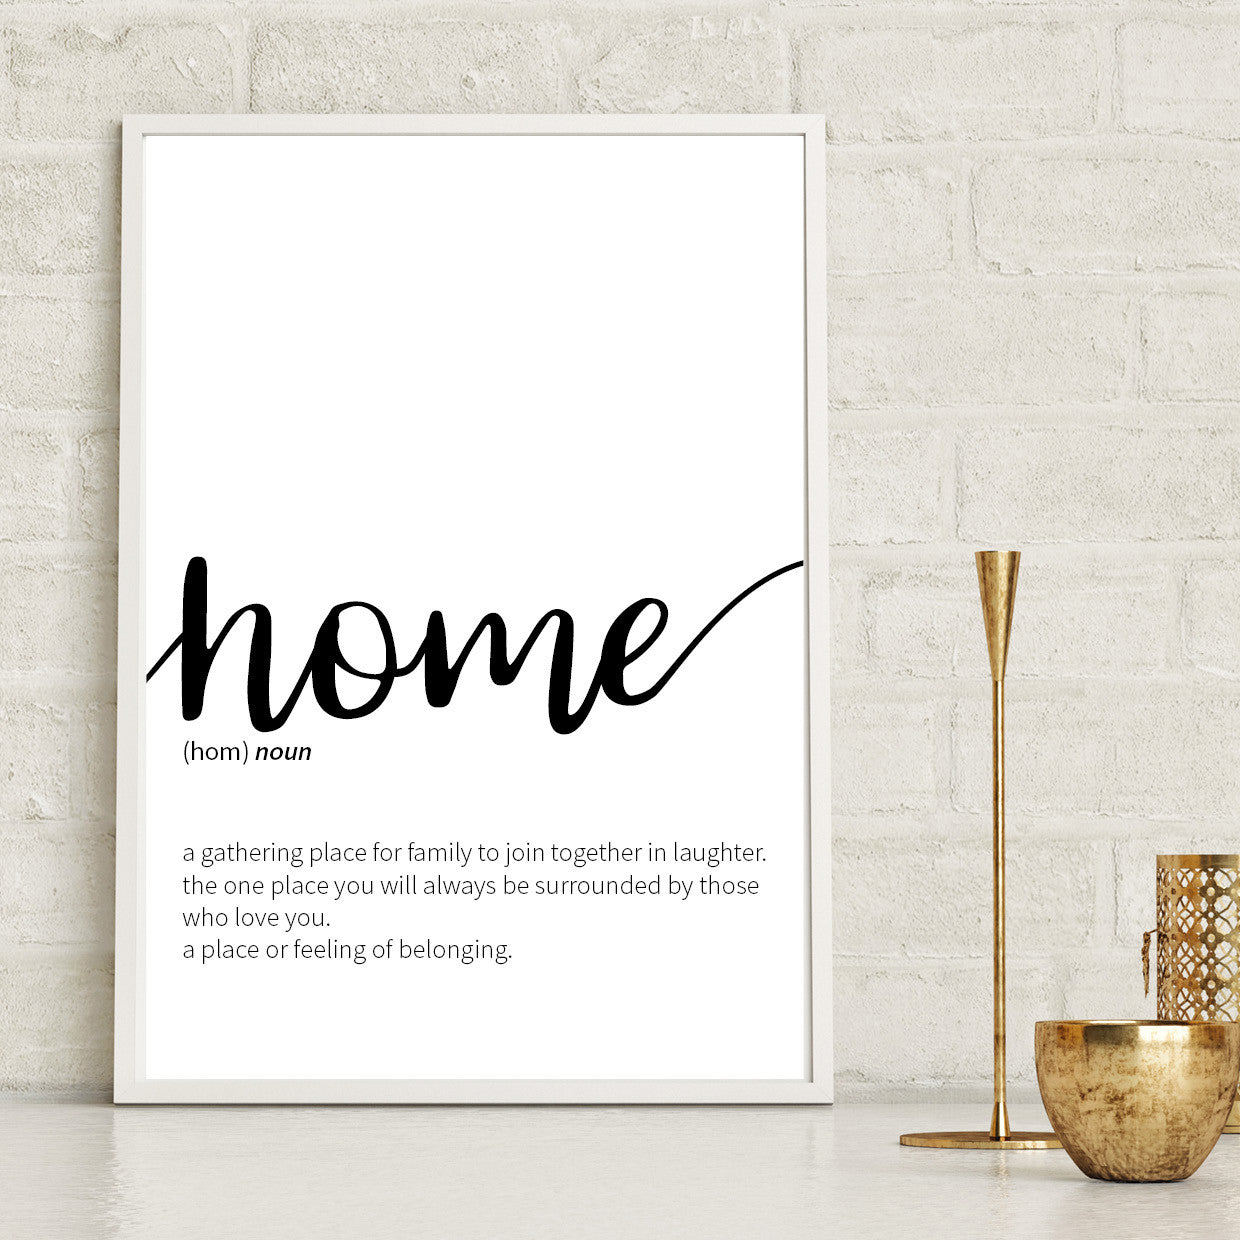 Home definition print couture moments home definition print stopboris Images